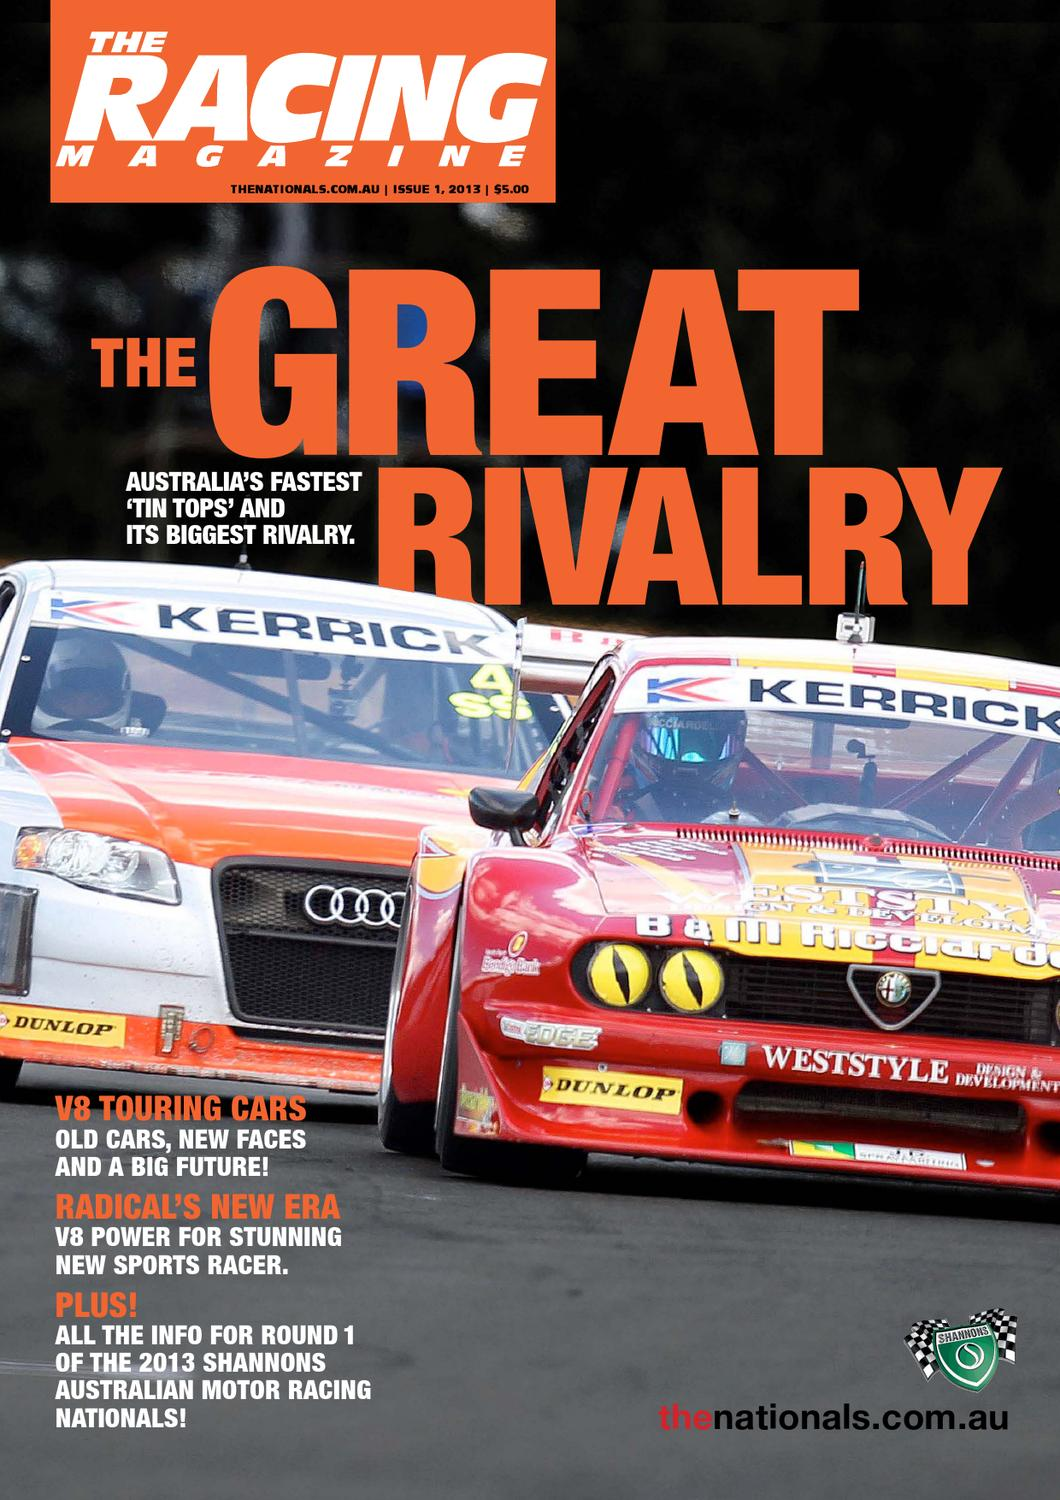 The Racing Magazine - Issue 1 by Richard Craill - issuu